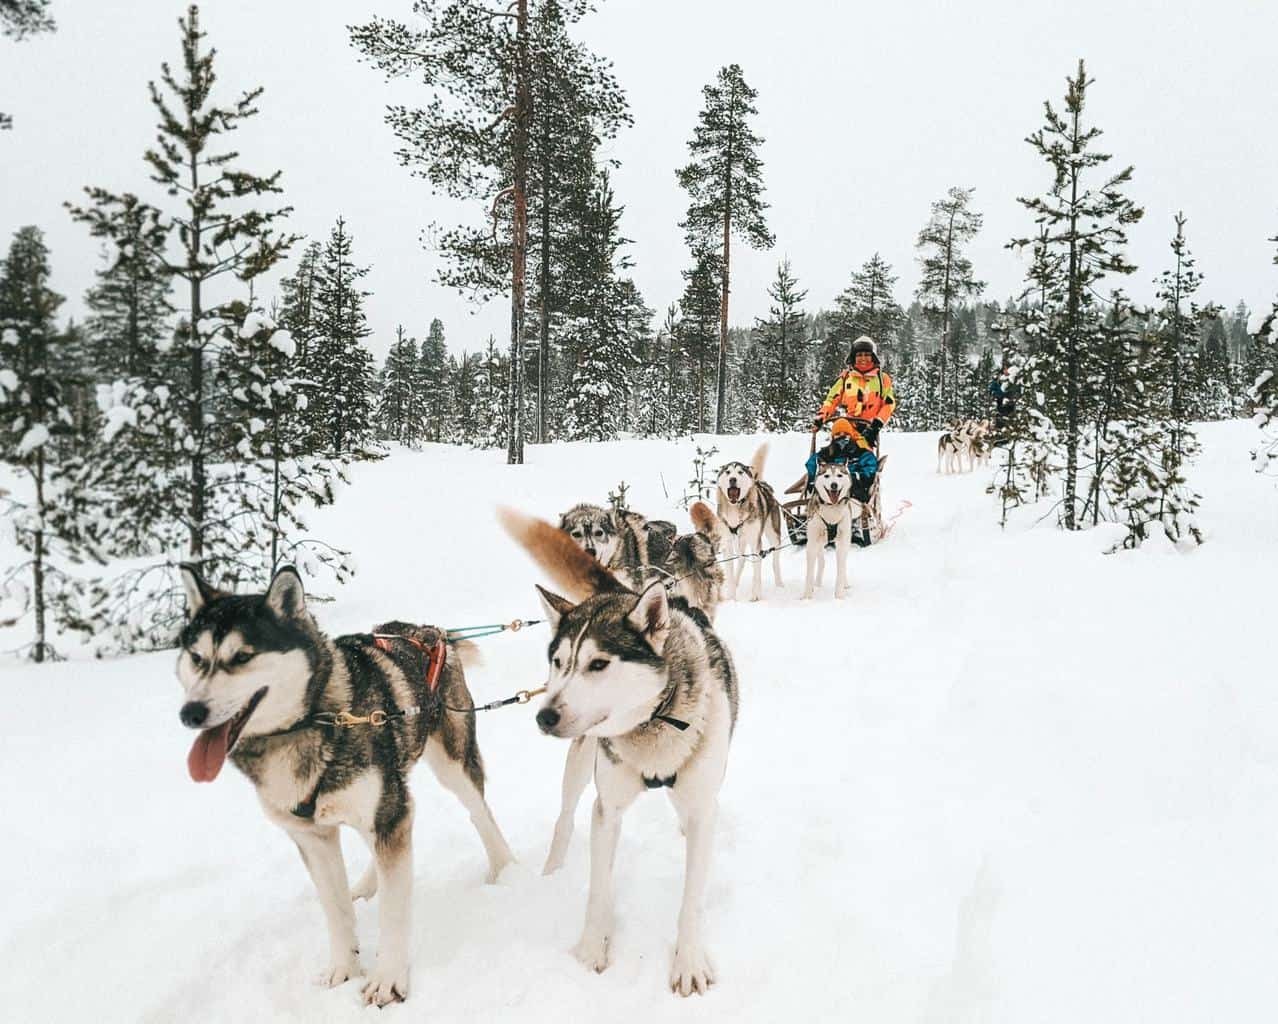 A sled being pulled by a group of huskies Finnish Lapland, Lapland destinations, Lapland Finland, Inghams